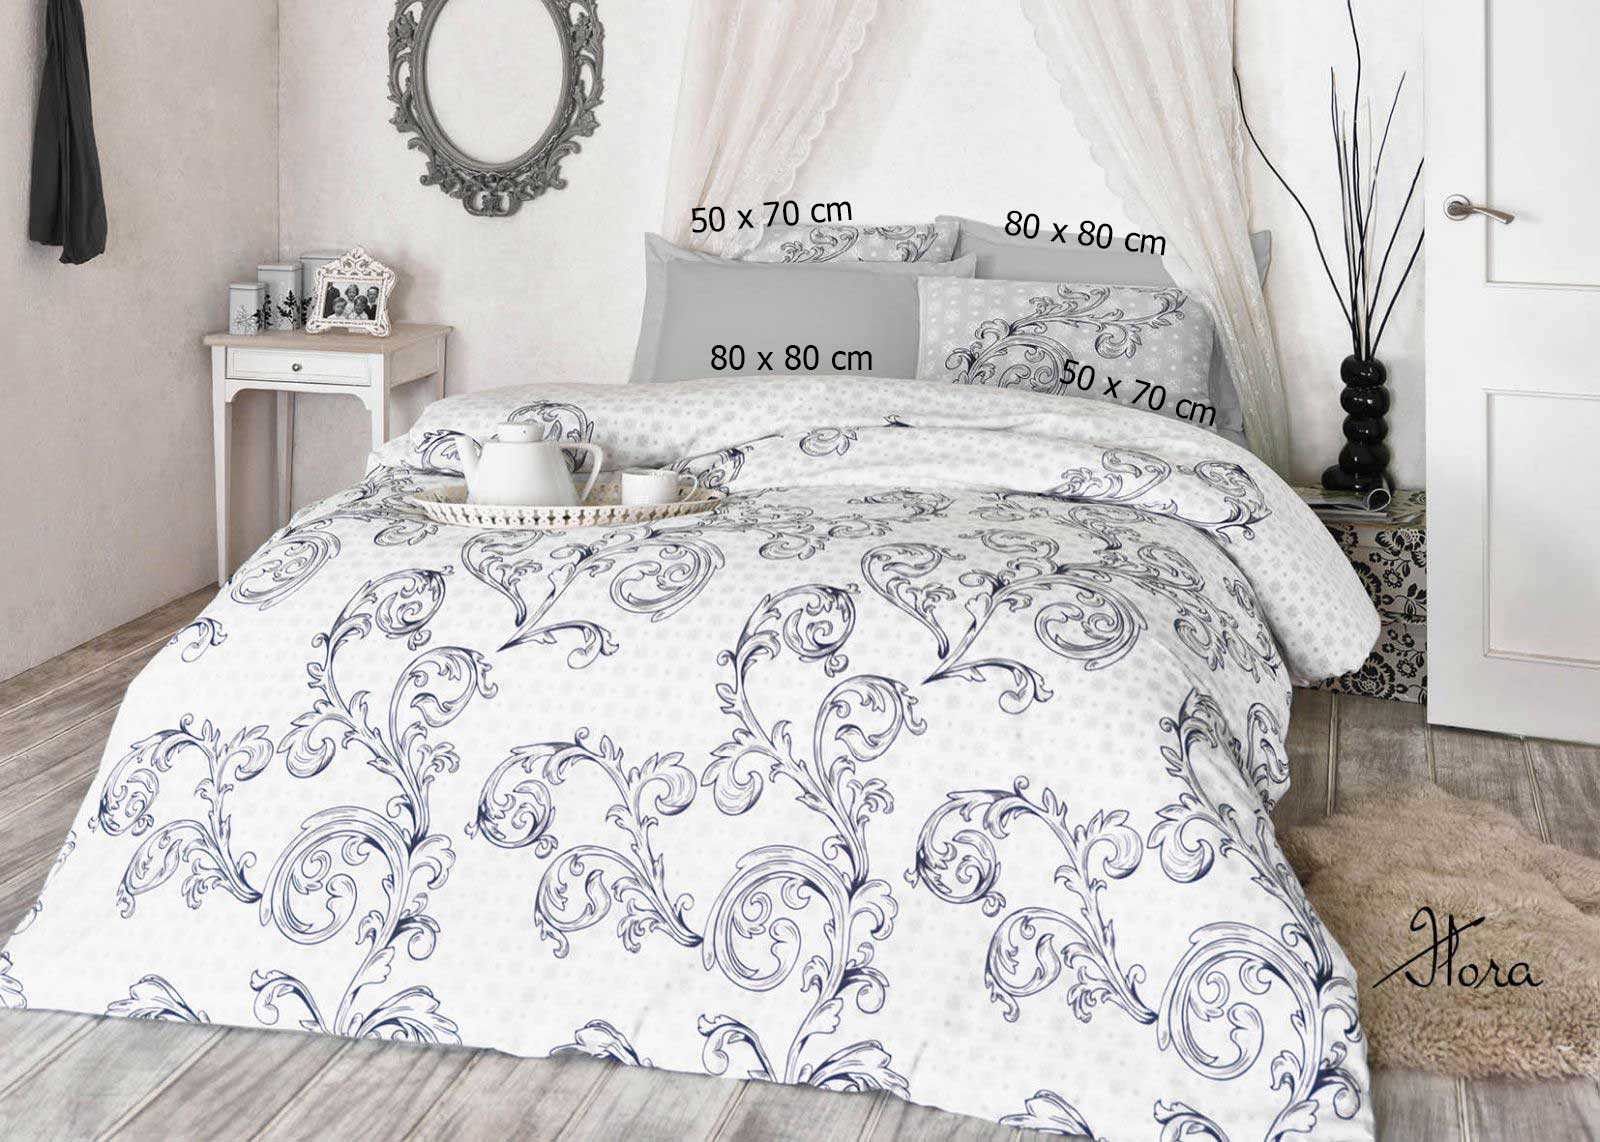 5 tlg bettw sche bettgarnitur 100 baumwolle kissen decke 200x200 cm flora sw ebay. Black Bedroom Furniture Sets. Home Design Ideas